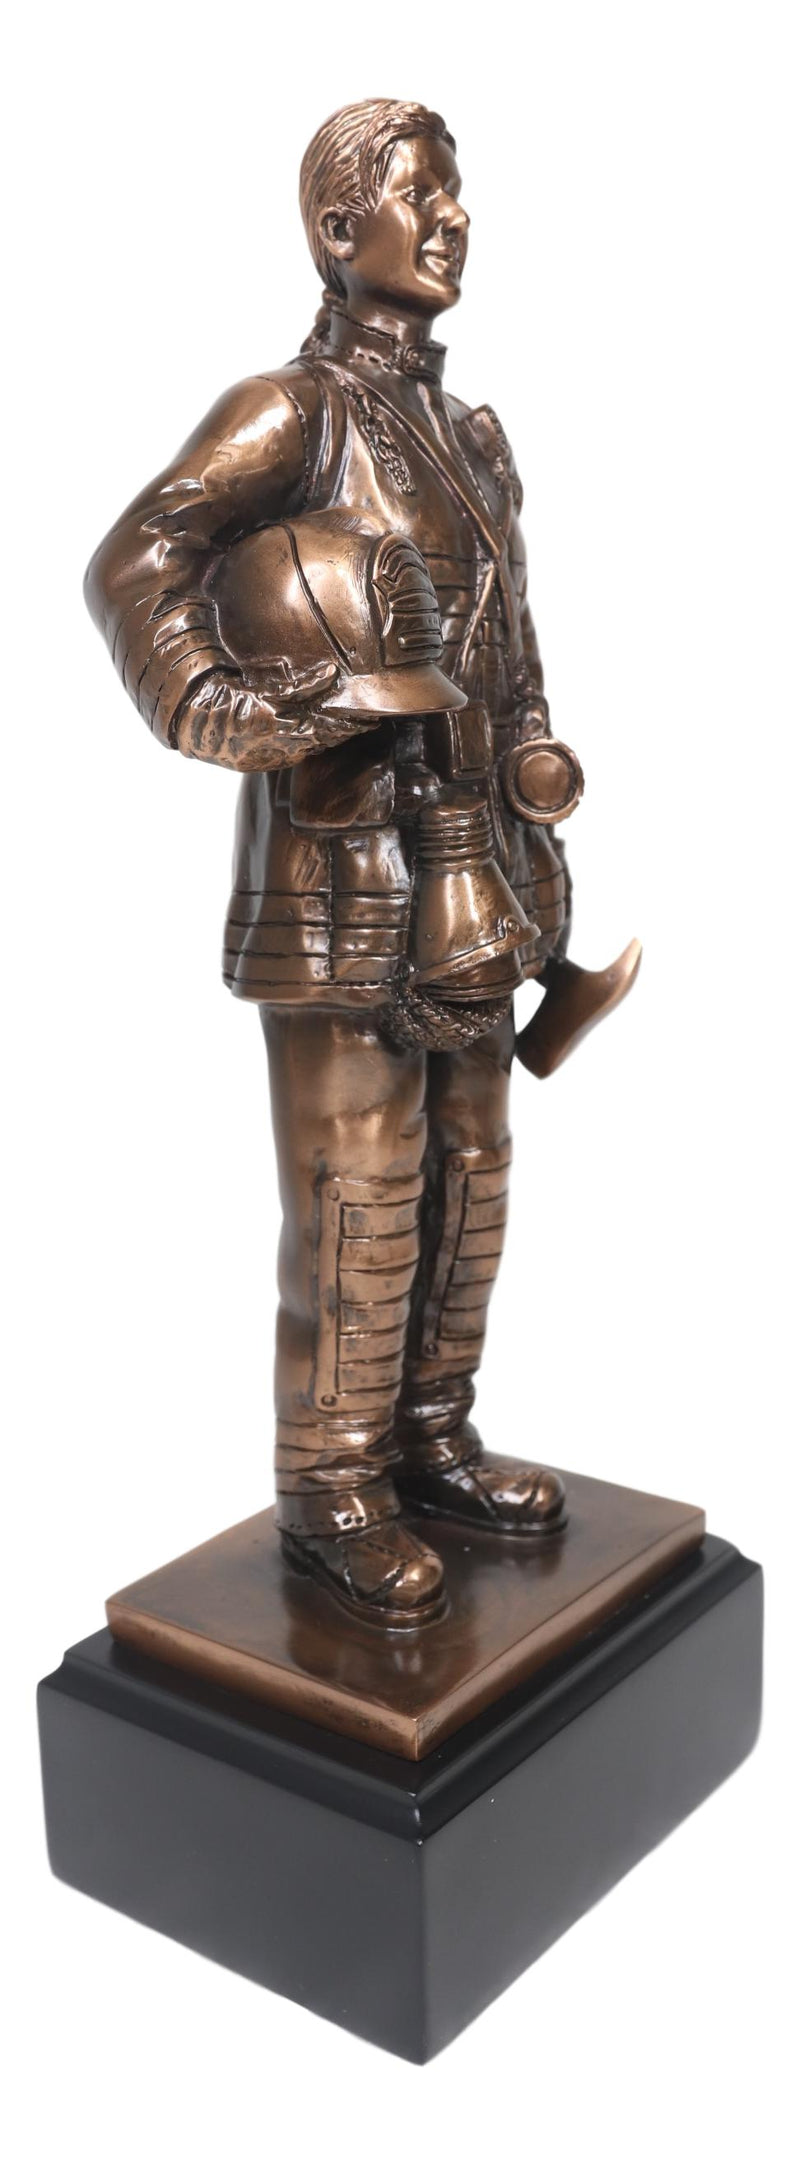 Fire Fighter Civil Service Firewoman With Helmet and Axe On Trophy Base Statue